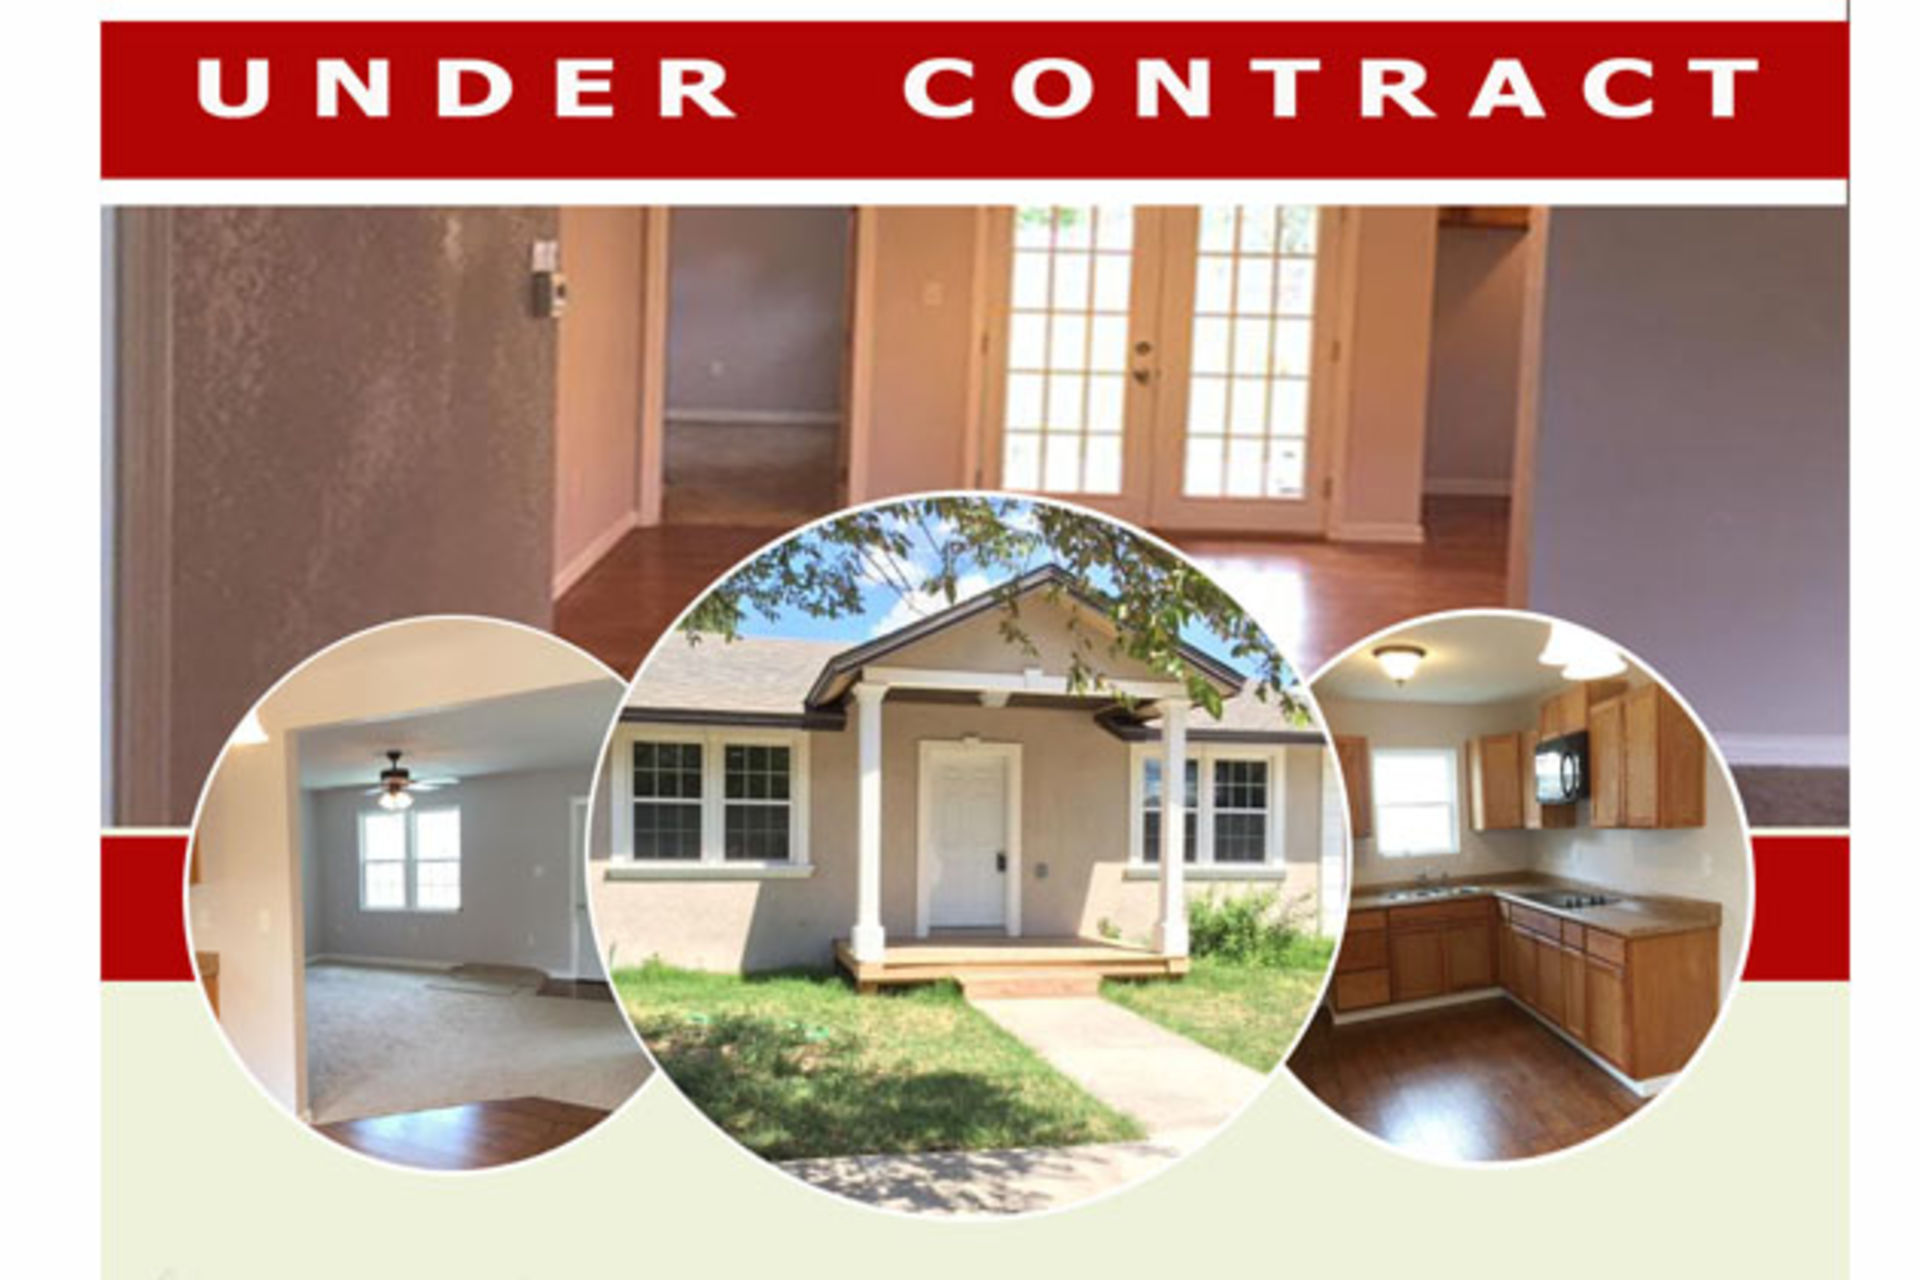 4238 15th Ave SW, Amarillo, TX 79106  – Under Contract